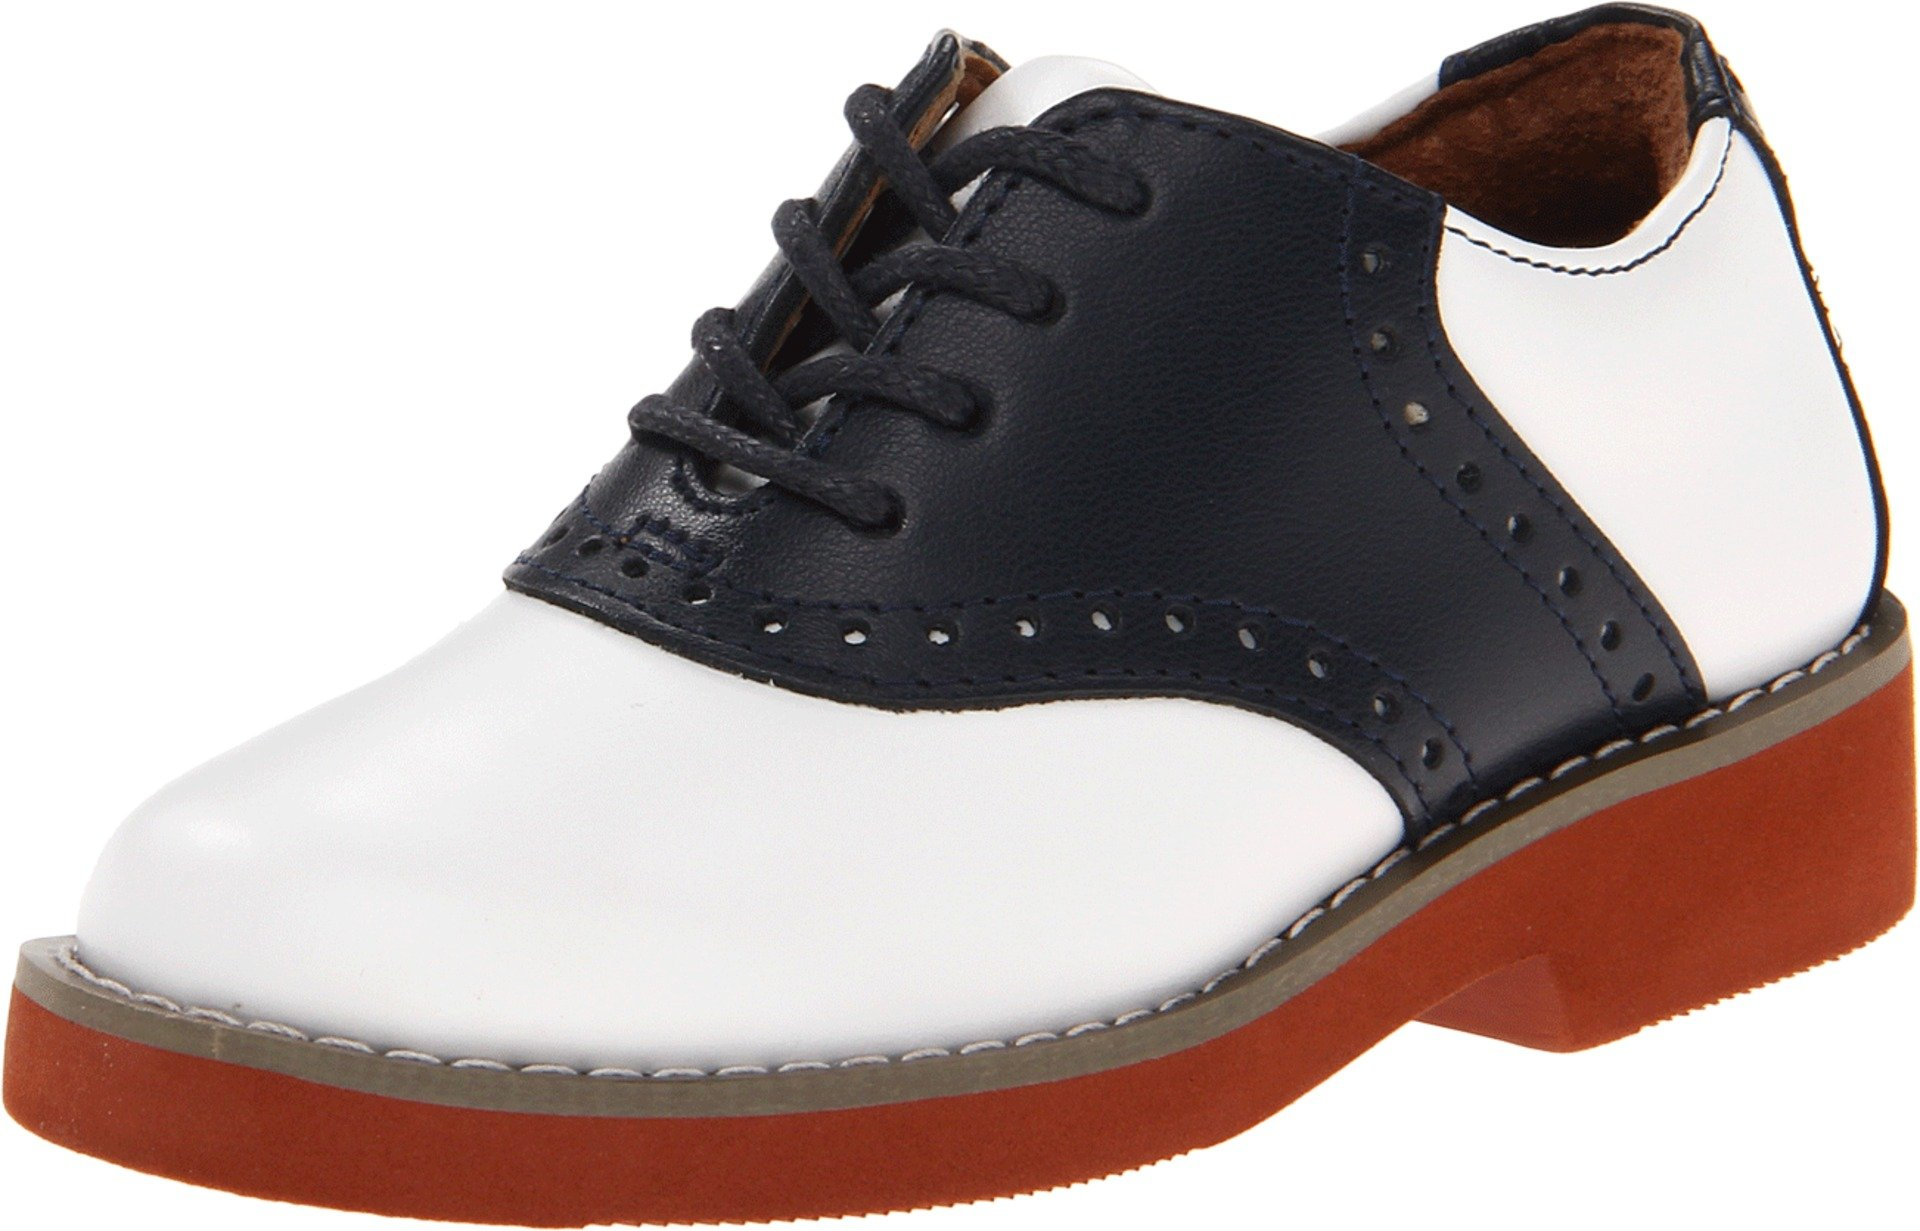 School Issue Upper Class Oxford (Adult),Navy/White,6.5 M US Women's